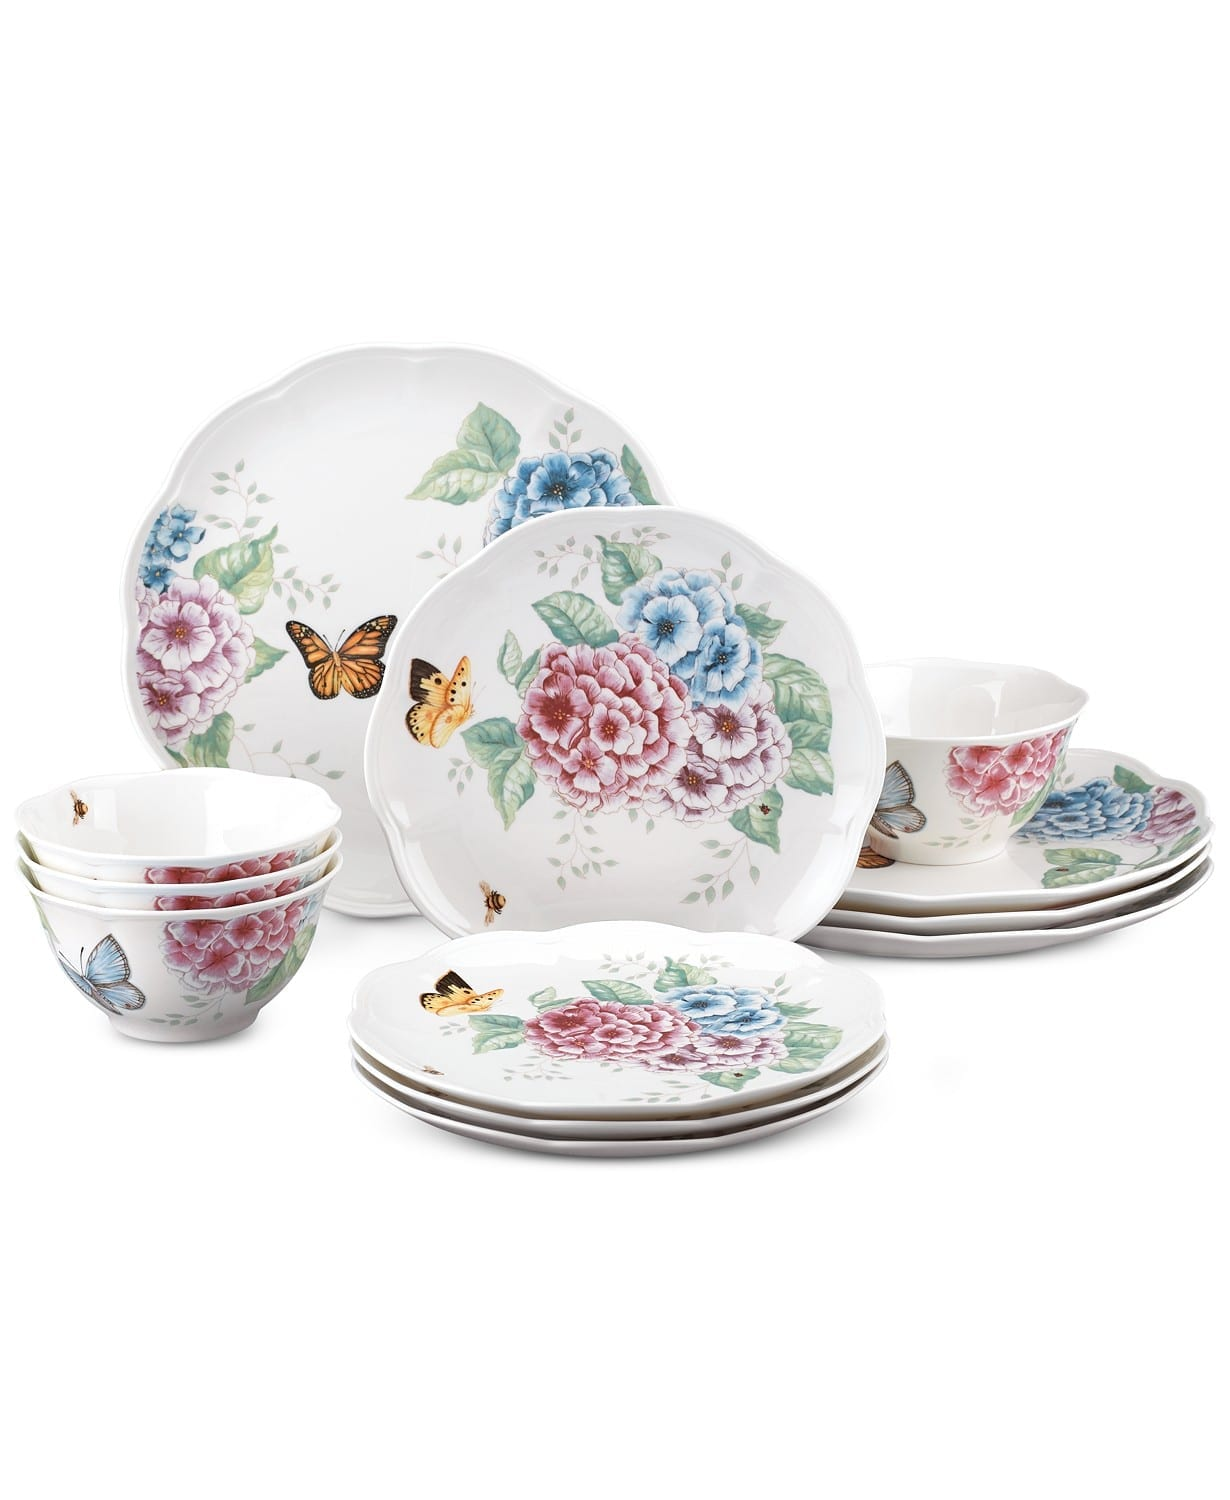 Macy's: Up to 60% off Lenox kitchenware + extra 30% off.